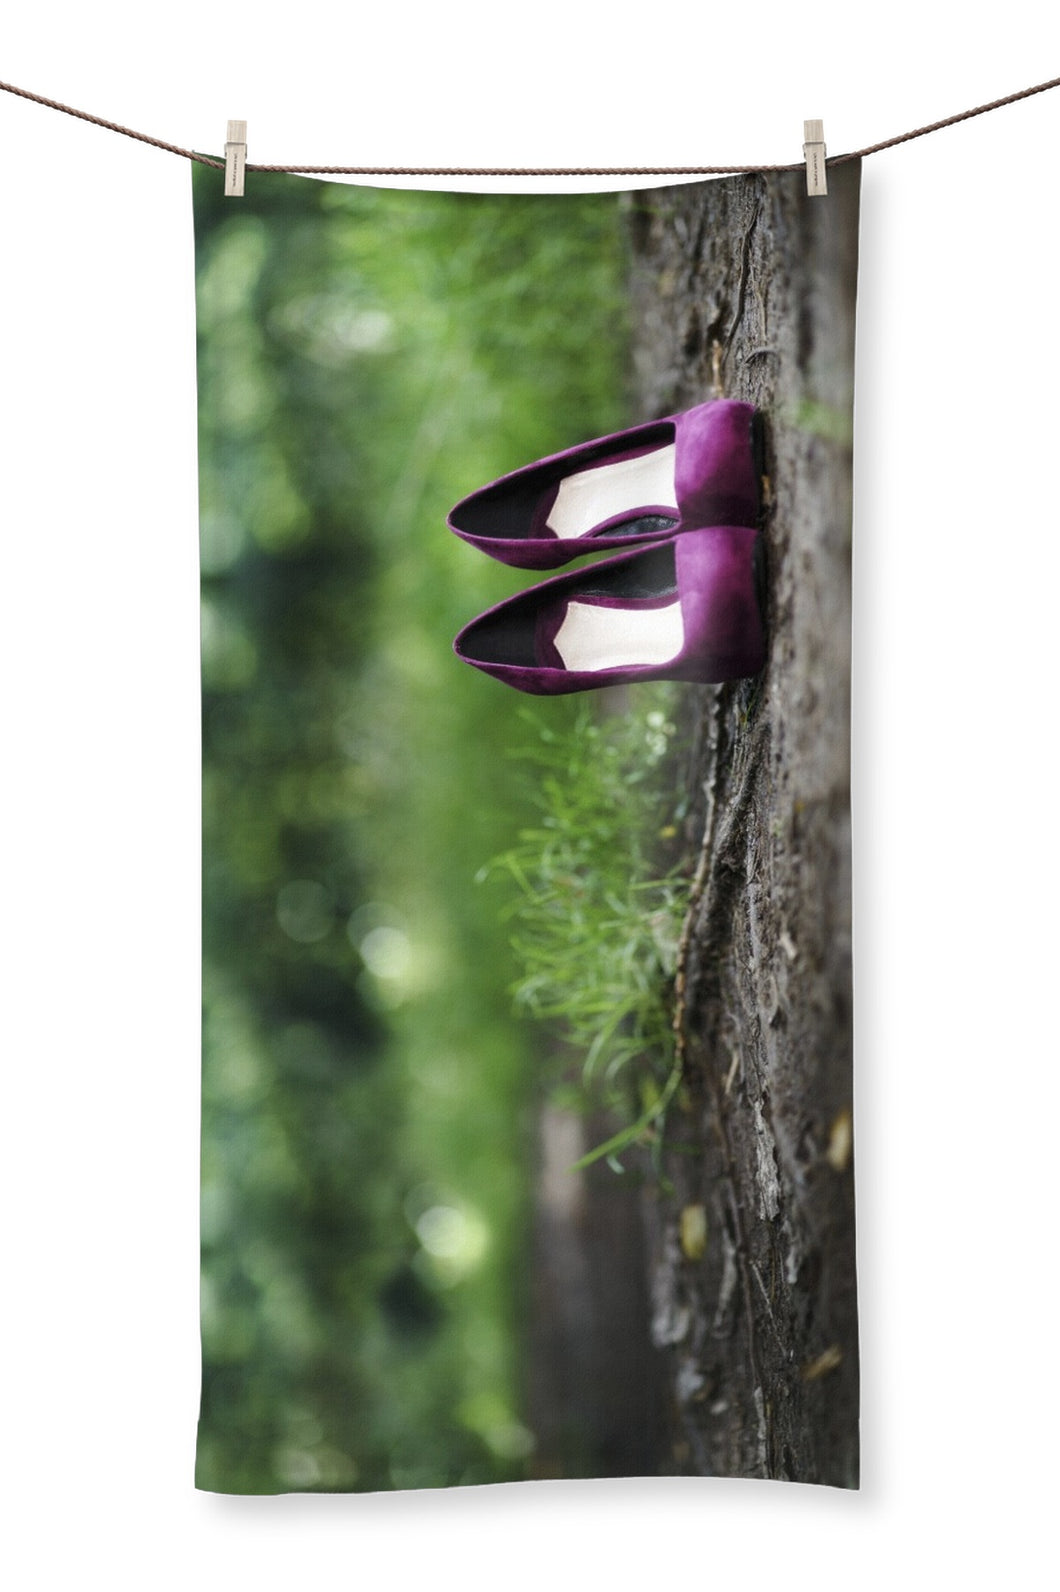 Towel mug showing a pair of purple women's high heeled shoes alone on path in the woods